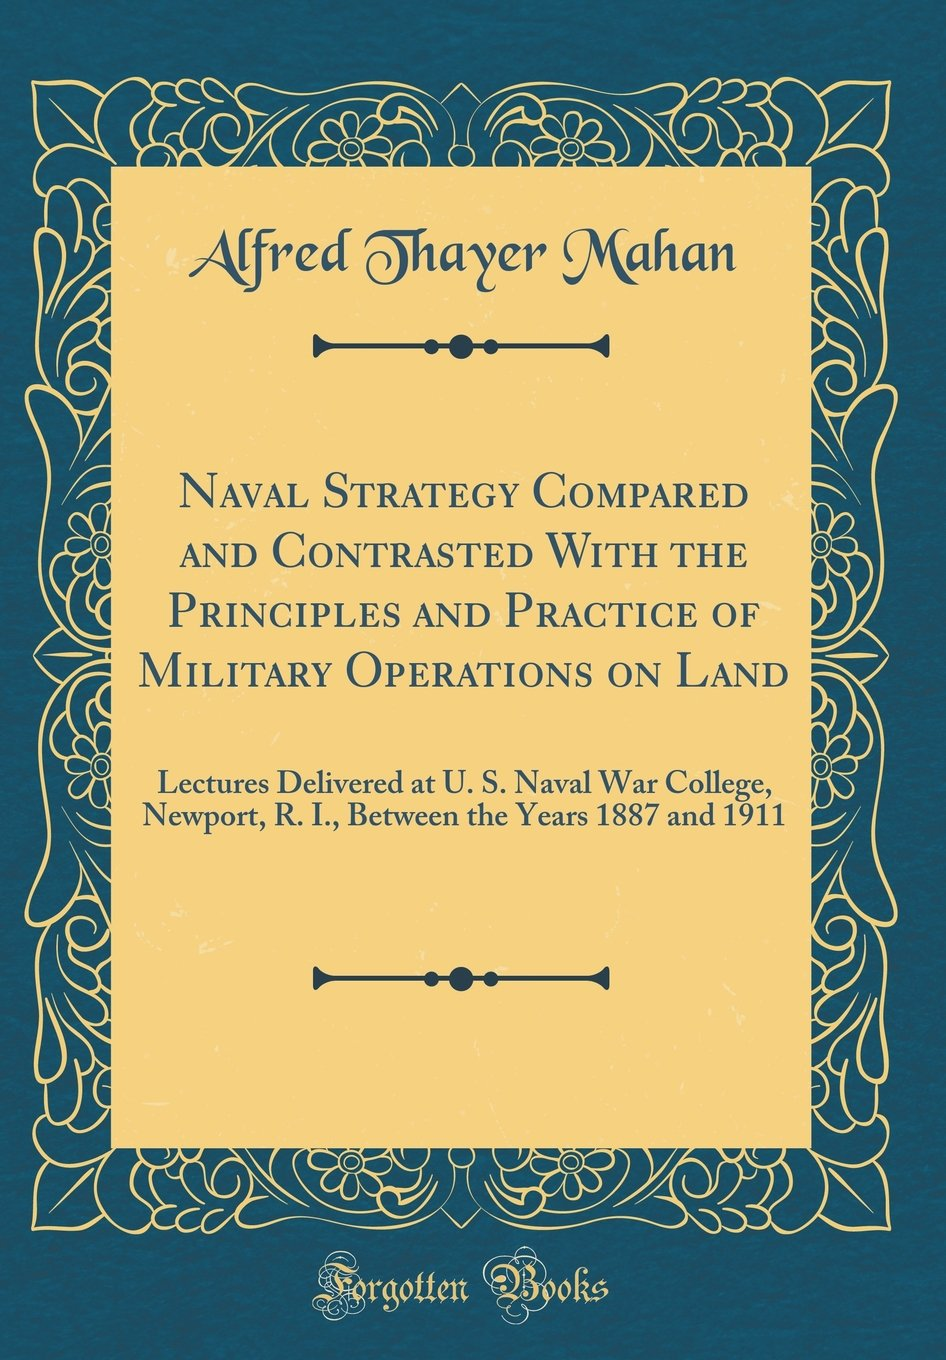 Naval Strategy Compared and Contrasted With the Principles and Practice of Military Operations on Land: Lectures Delivered at U. S. Naval War College, ... the Years 1887 and 1911 (Classic Reprint) pdf epub